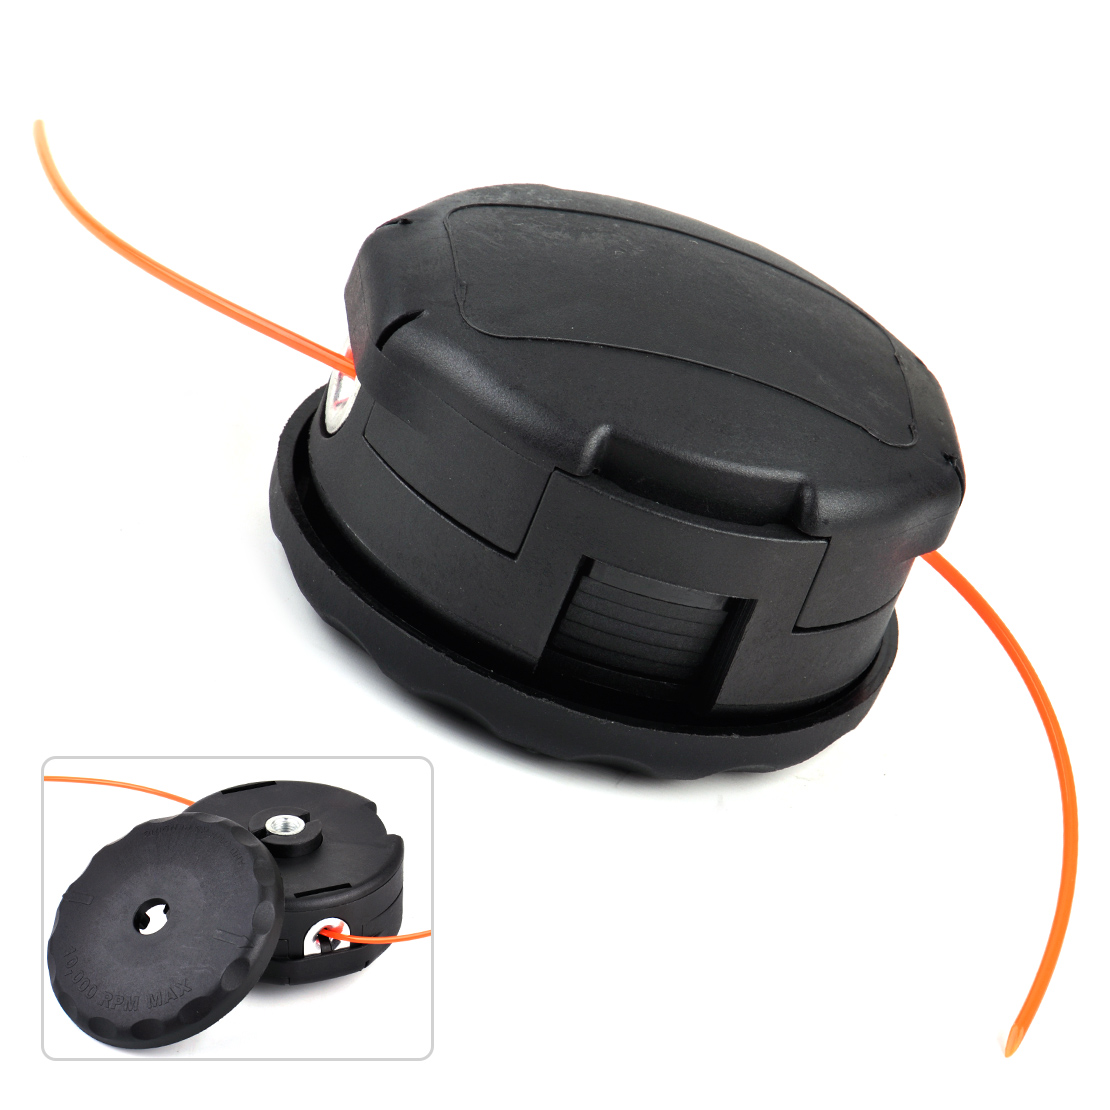 LETAOSK New 400 Bump Speed Feed String Trimmer Head fit for Echo SRM-225 SRM-230 SRM-210 Mower